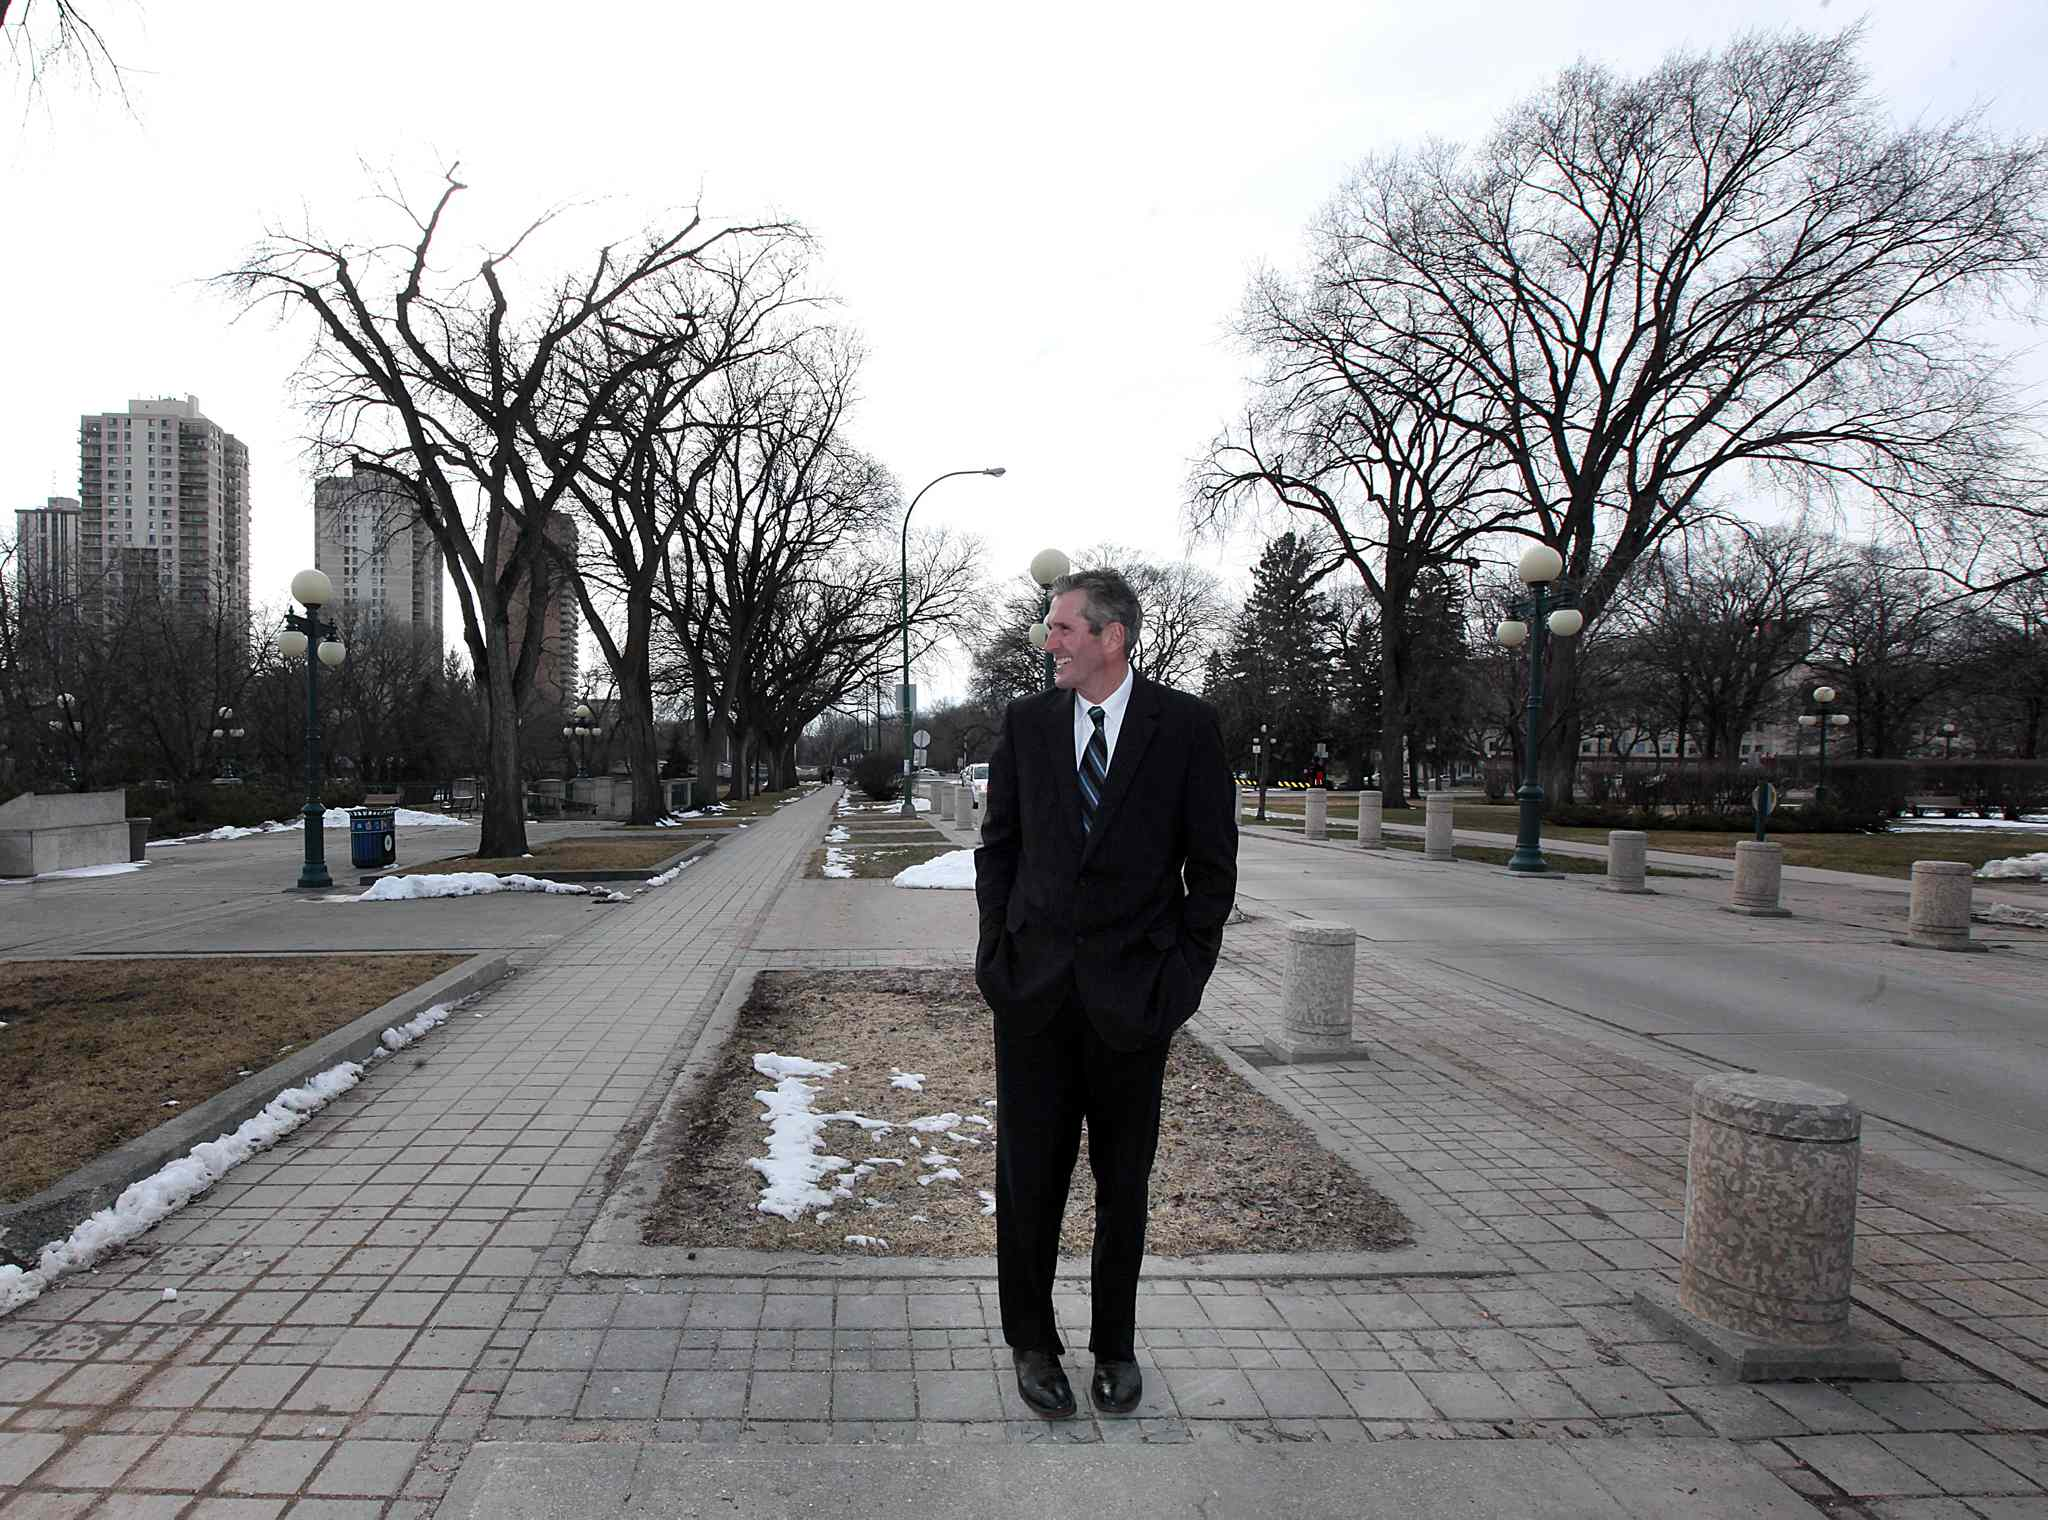 Pallister made tax cuts his focus in the opening days of the campaign.